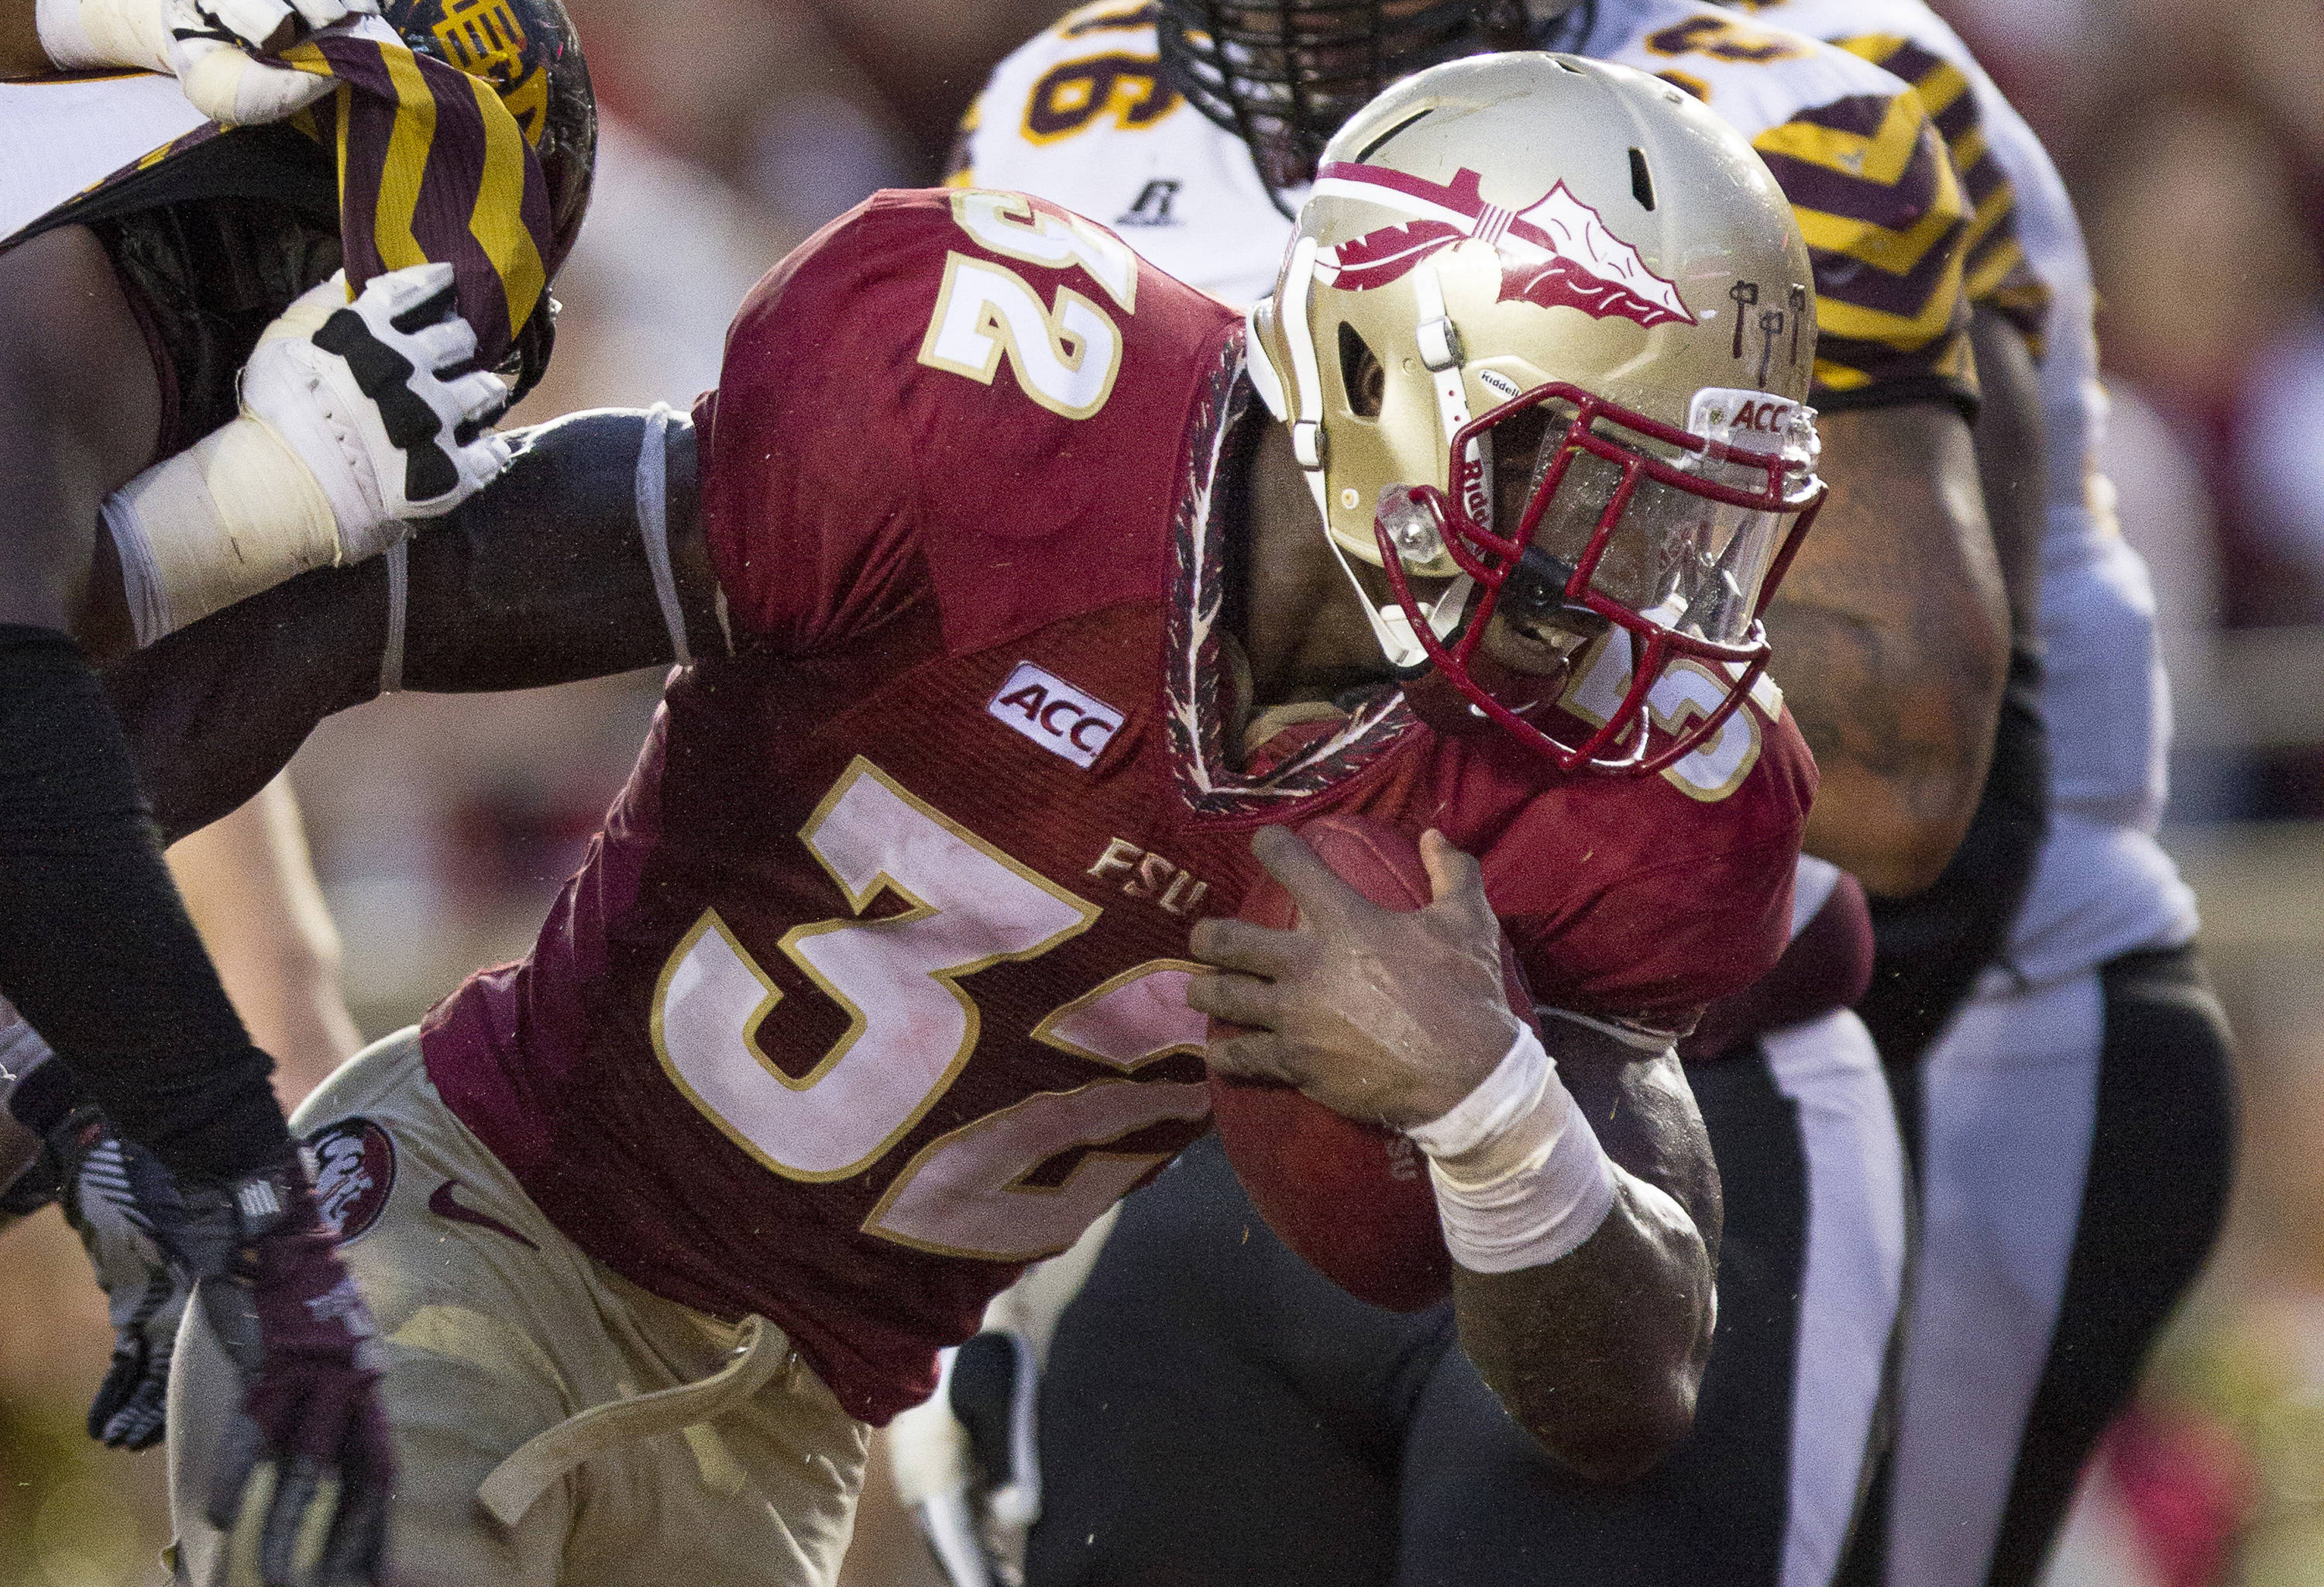 James Wilder, Jr. (32) carries the ball during FSU Football's 54-6 win over Bethune-Cookman on September 21, 2013 in Tallahassee, Fla